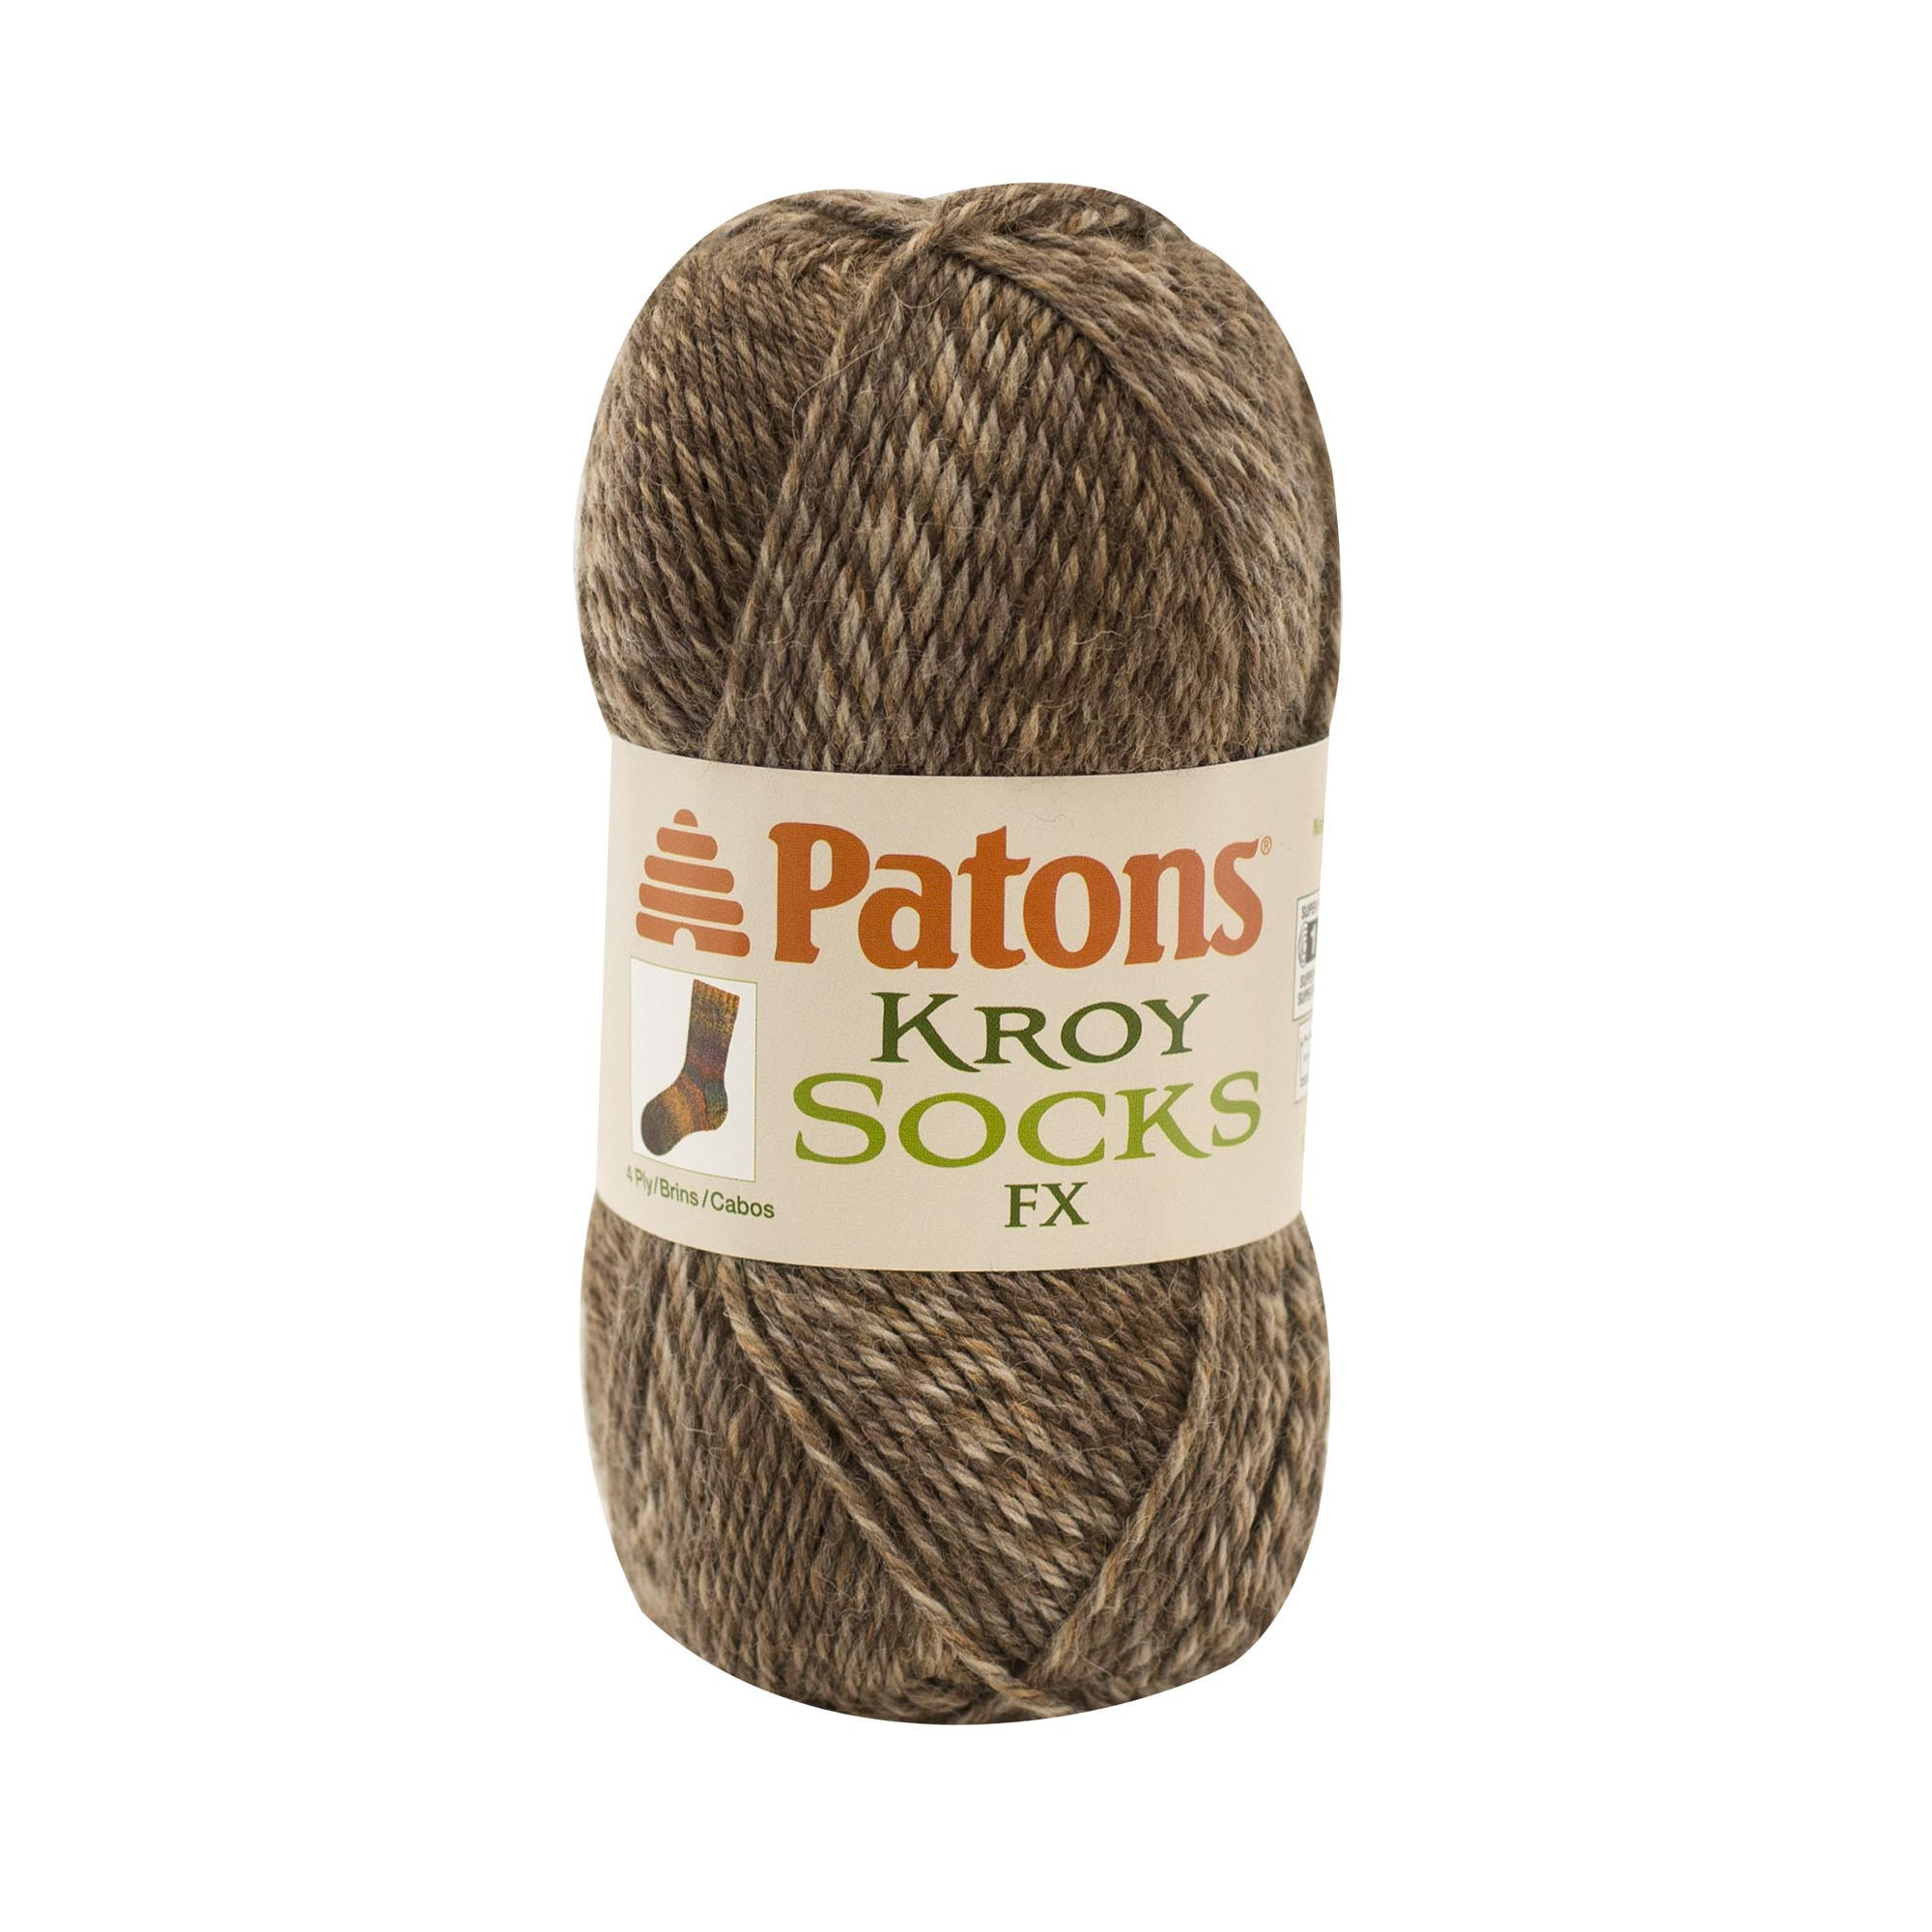 Best Of Yarnspirations Patons Yarn Patterns Of Adorable 48 Images Patons Yarn Patterns